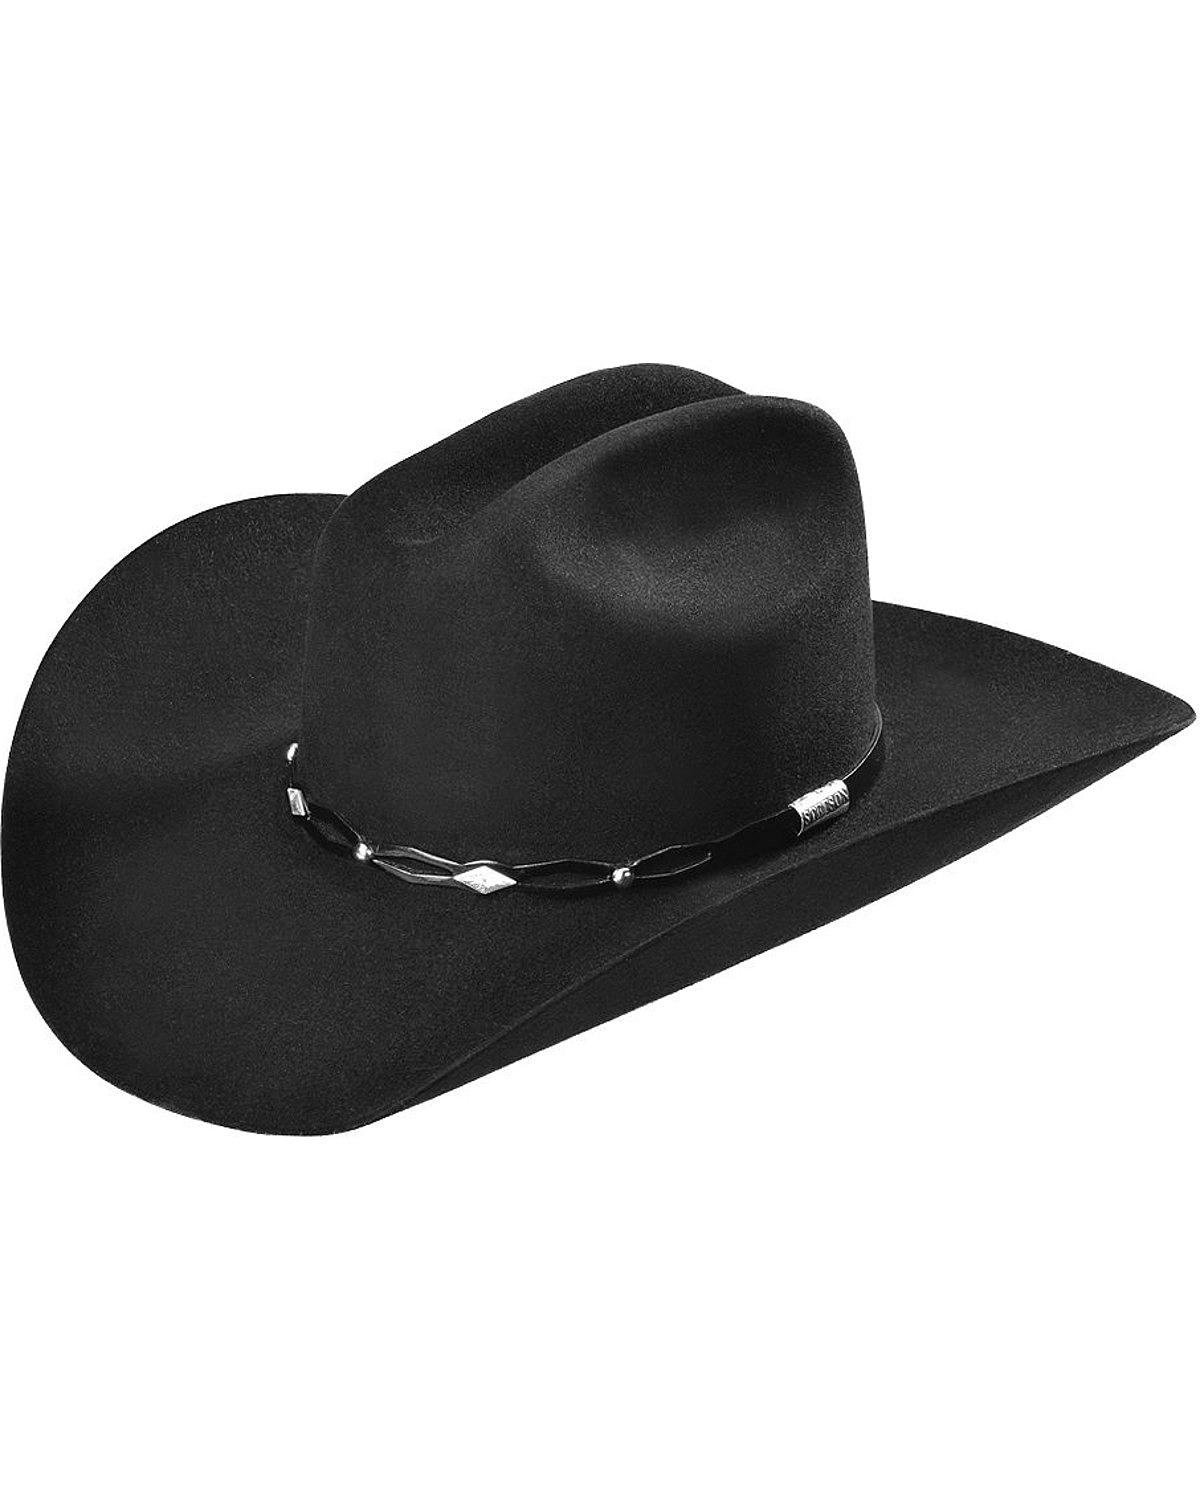 Stetson Men's 6X Fur Felt Brimstone Cowboy Hat Black 7 1/4